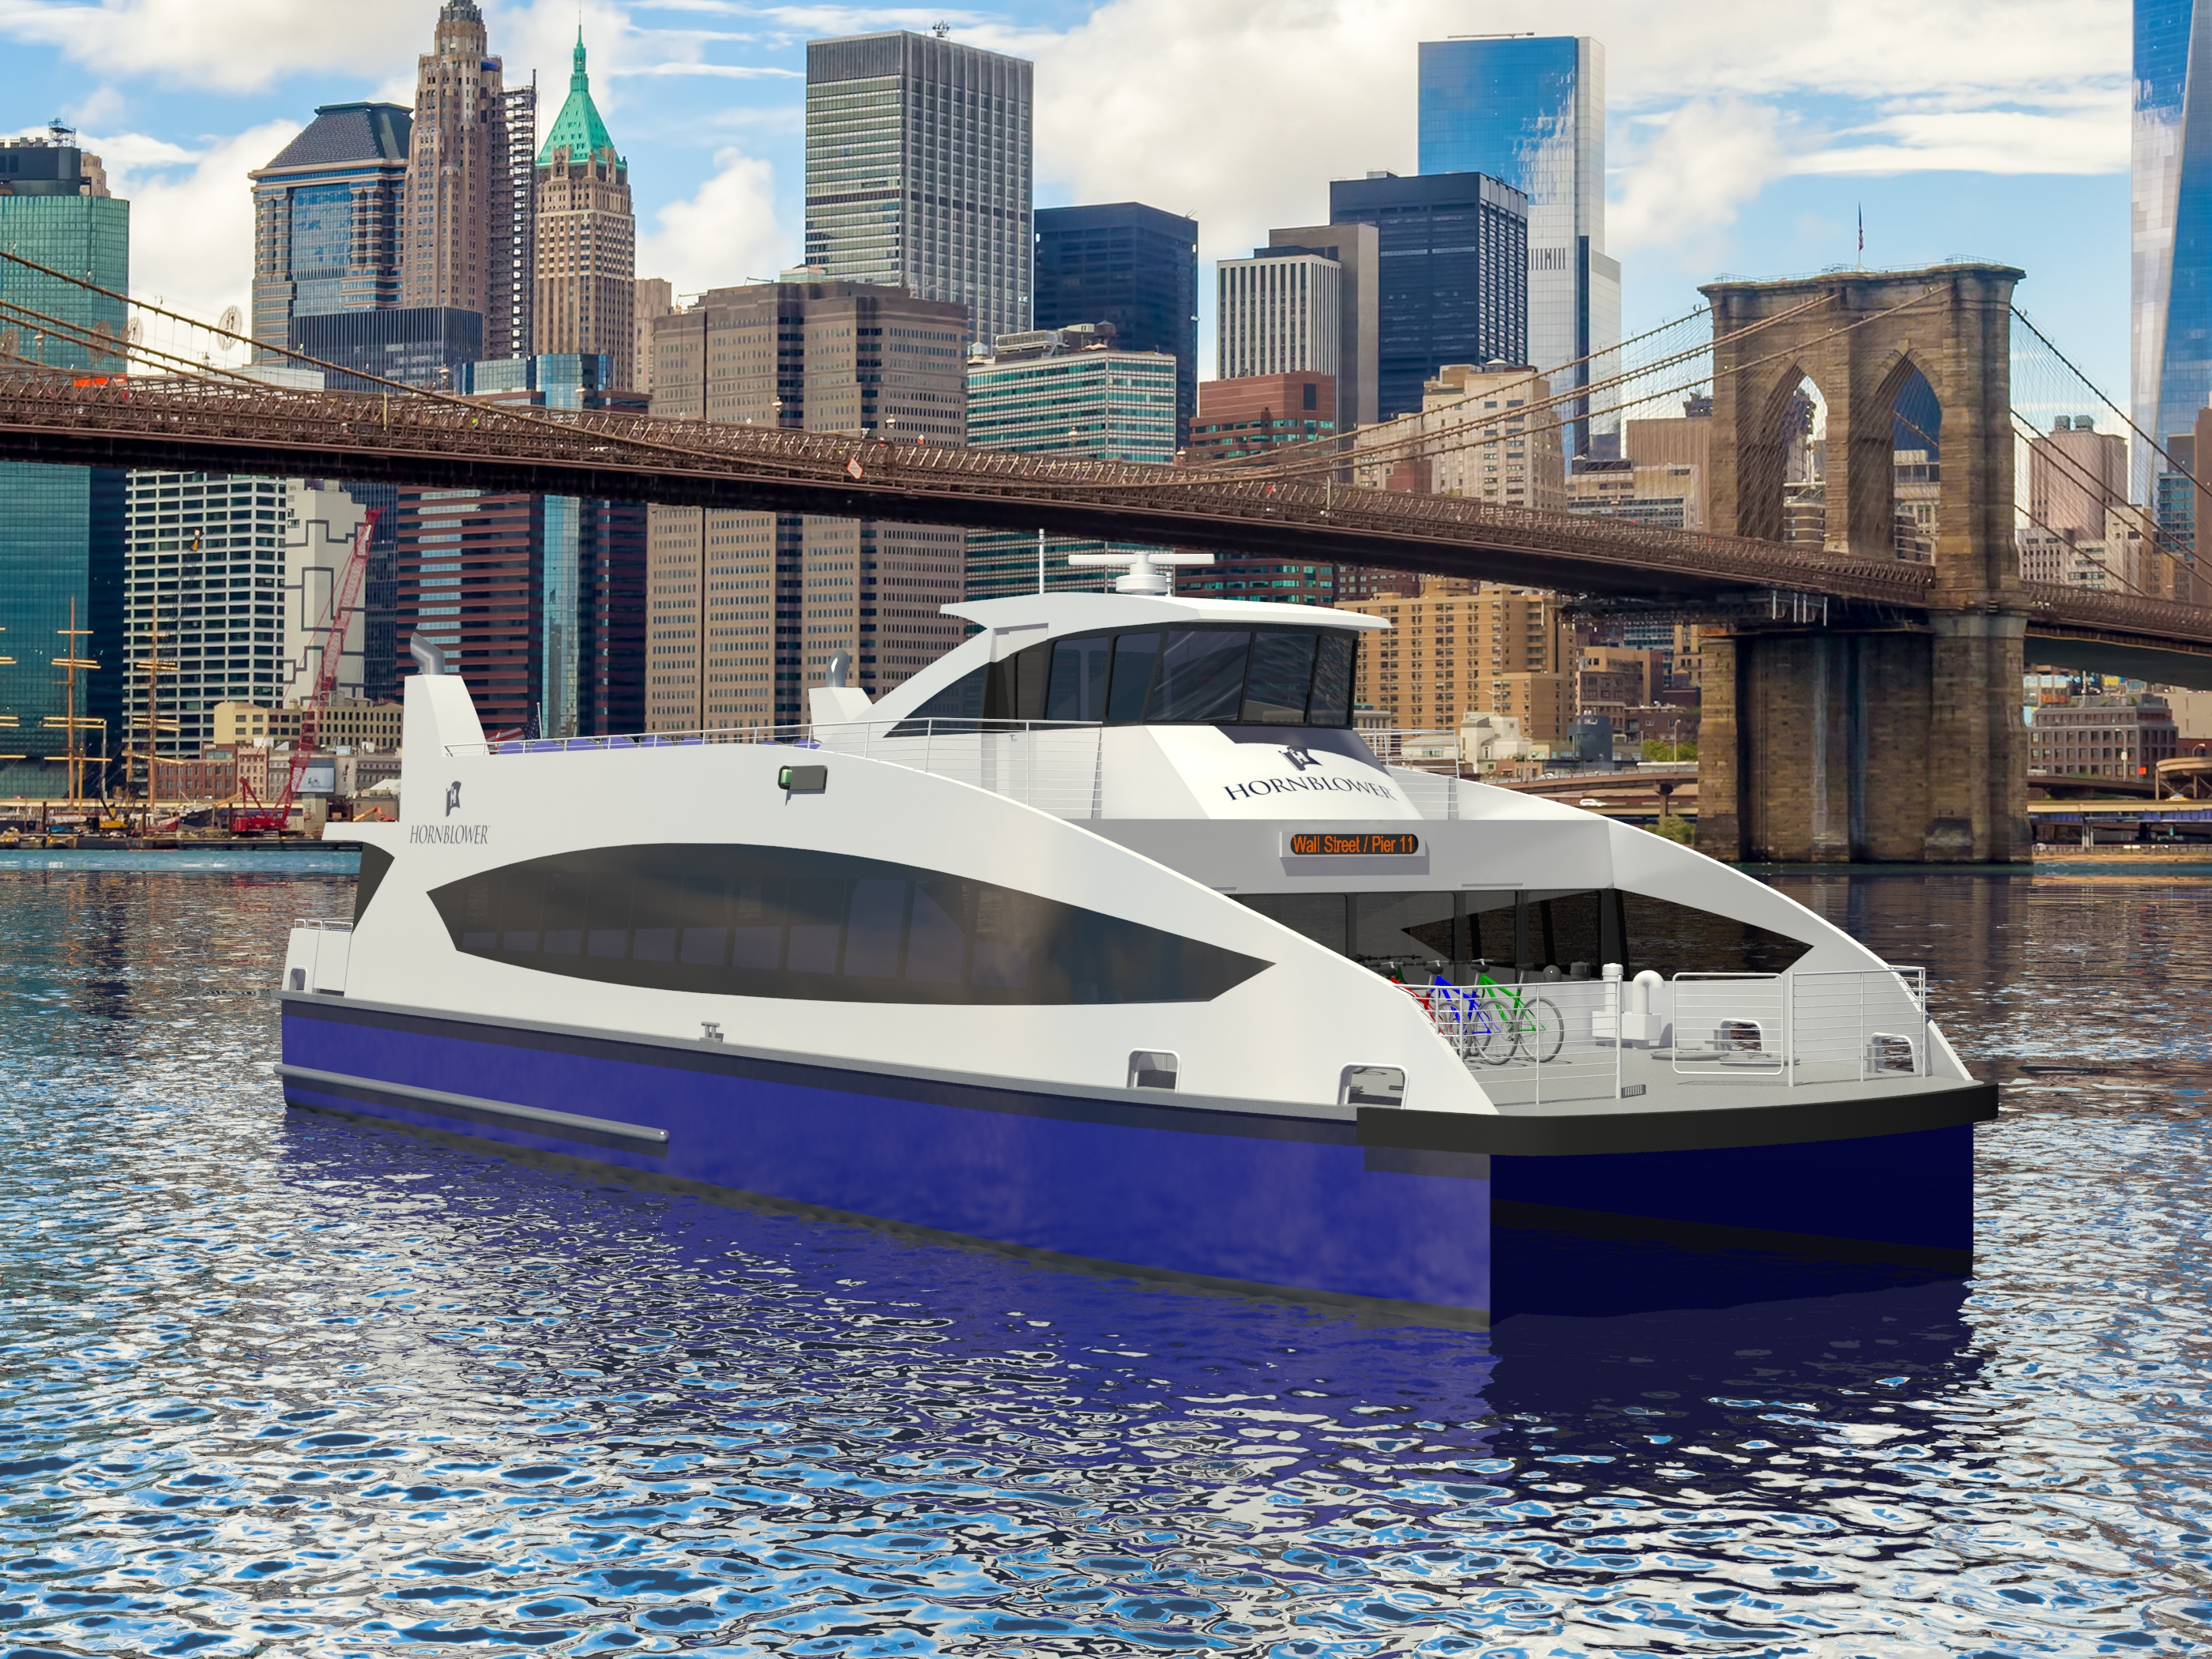 July 7, 2016: Metal Shark to Build Passenger Ferries for New